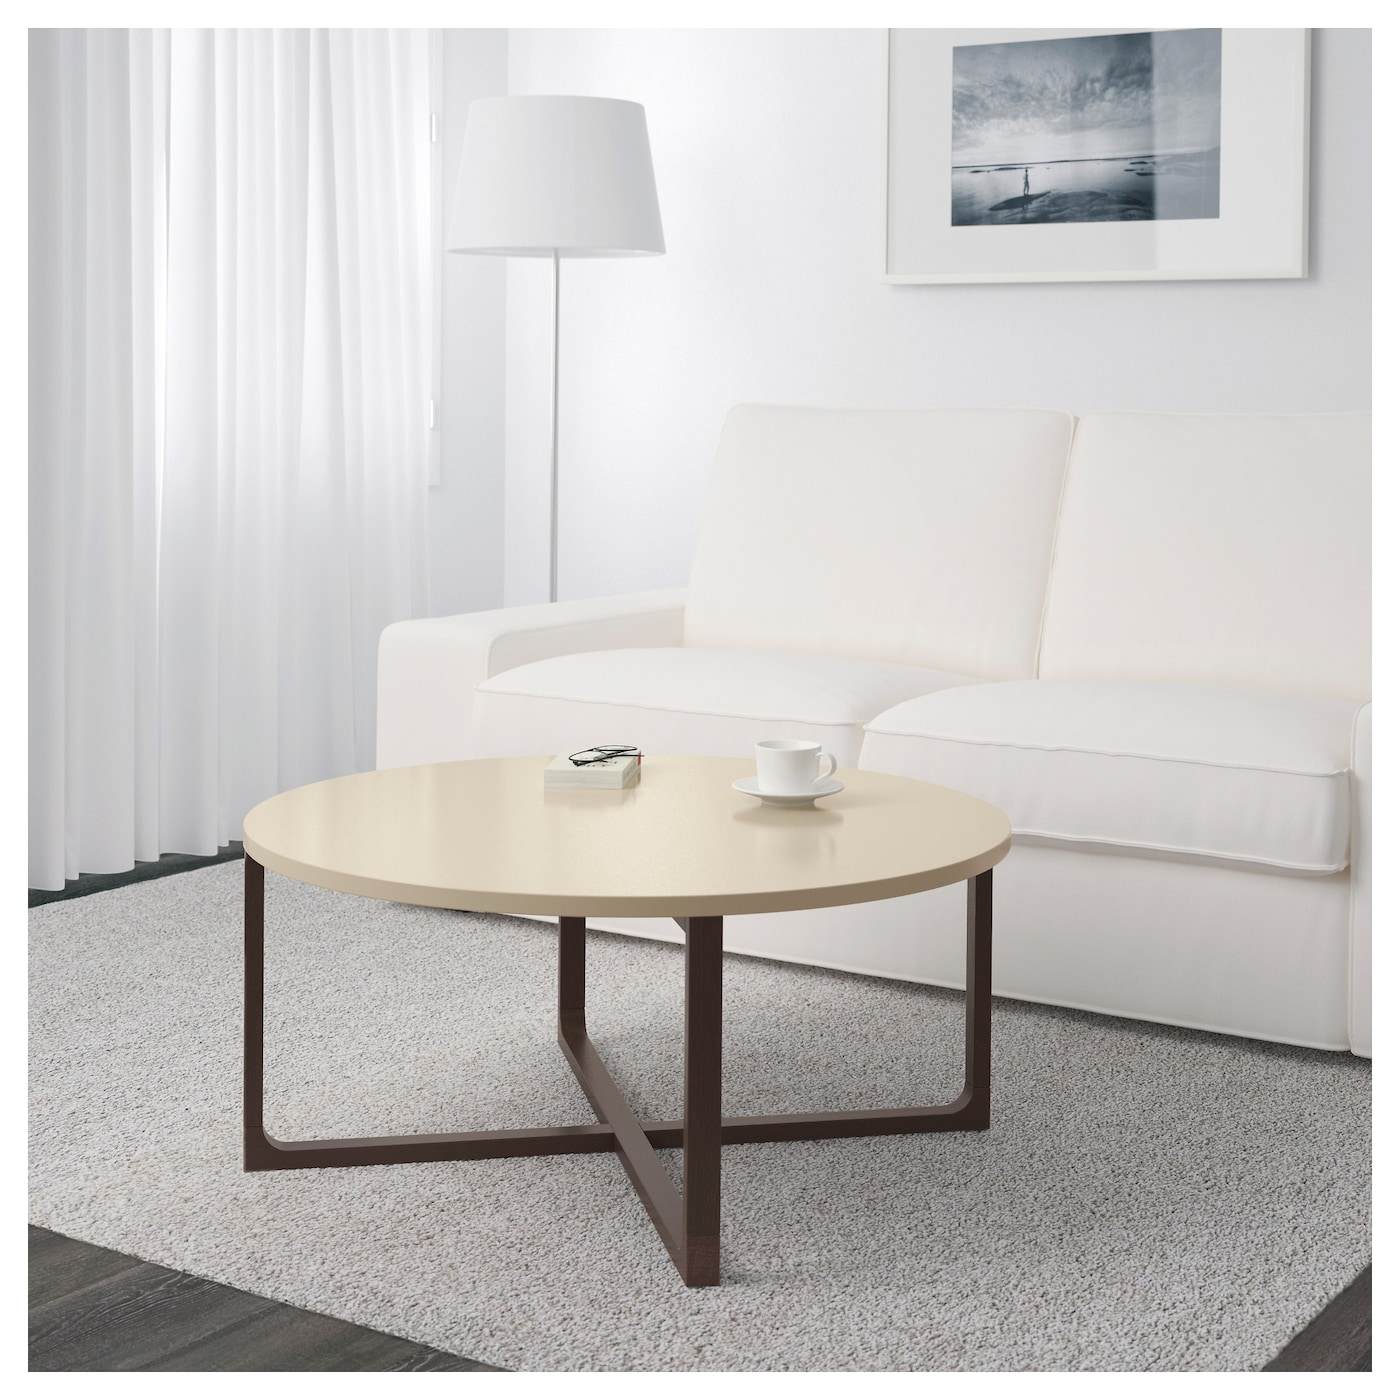 RISSNA Coffee Table Beige 90 Cm